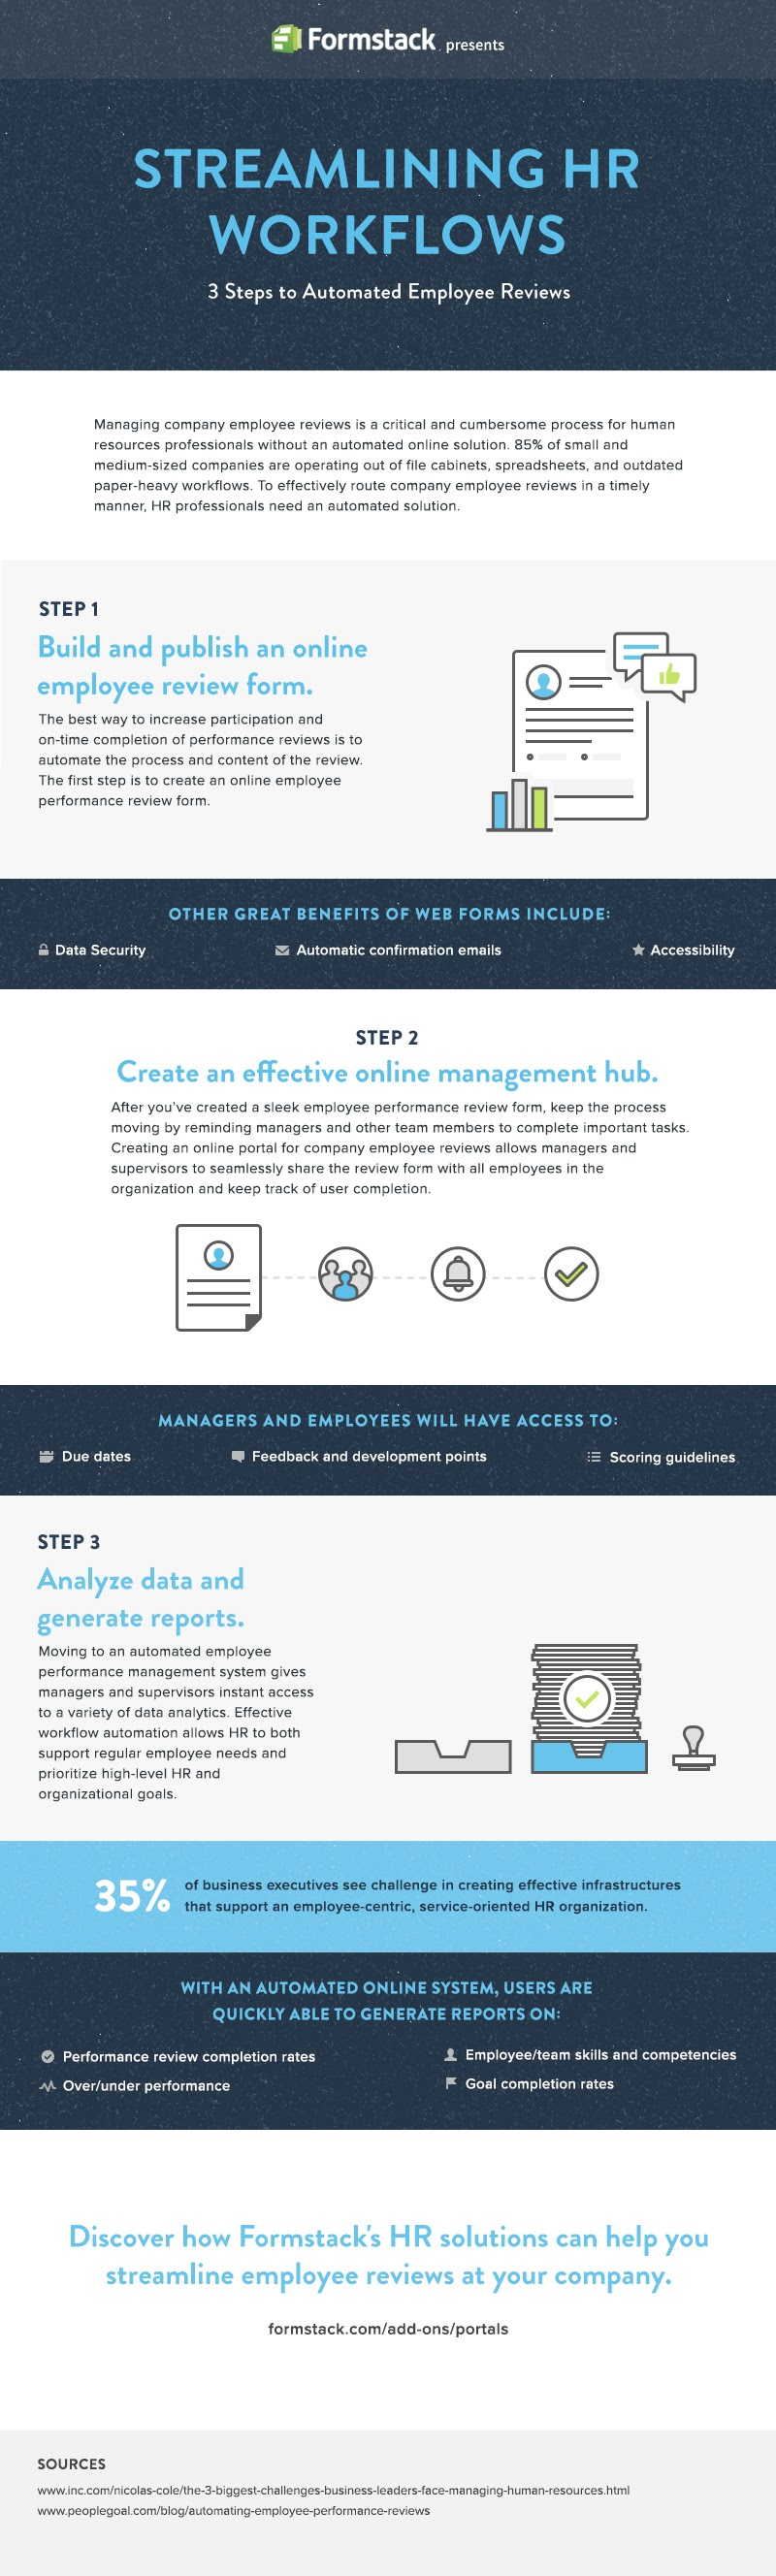 Streamlining HR Workflows 3 Steps to Automated Employee Reviews #infographic